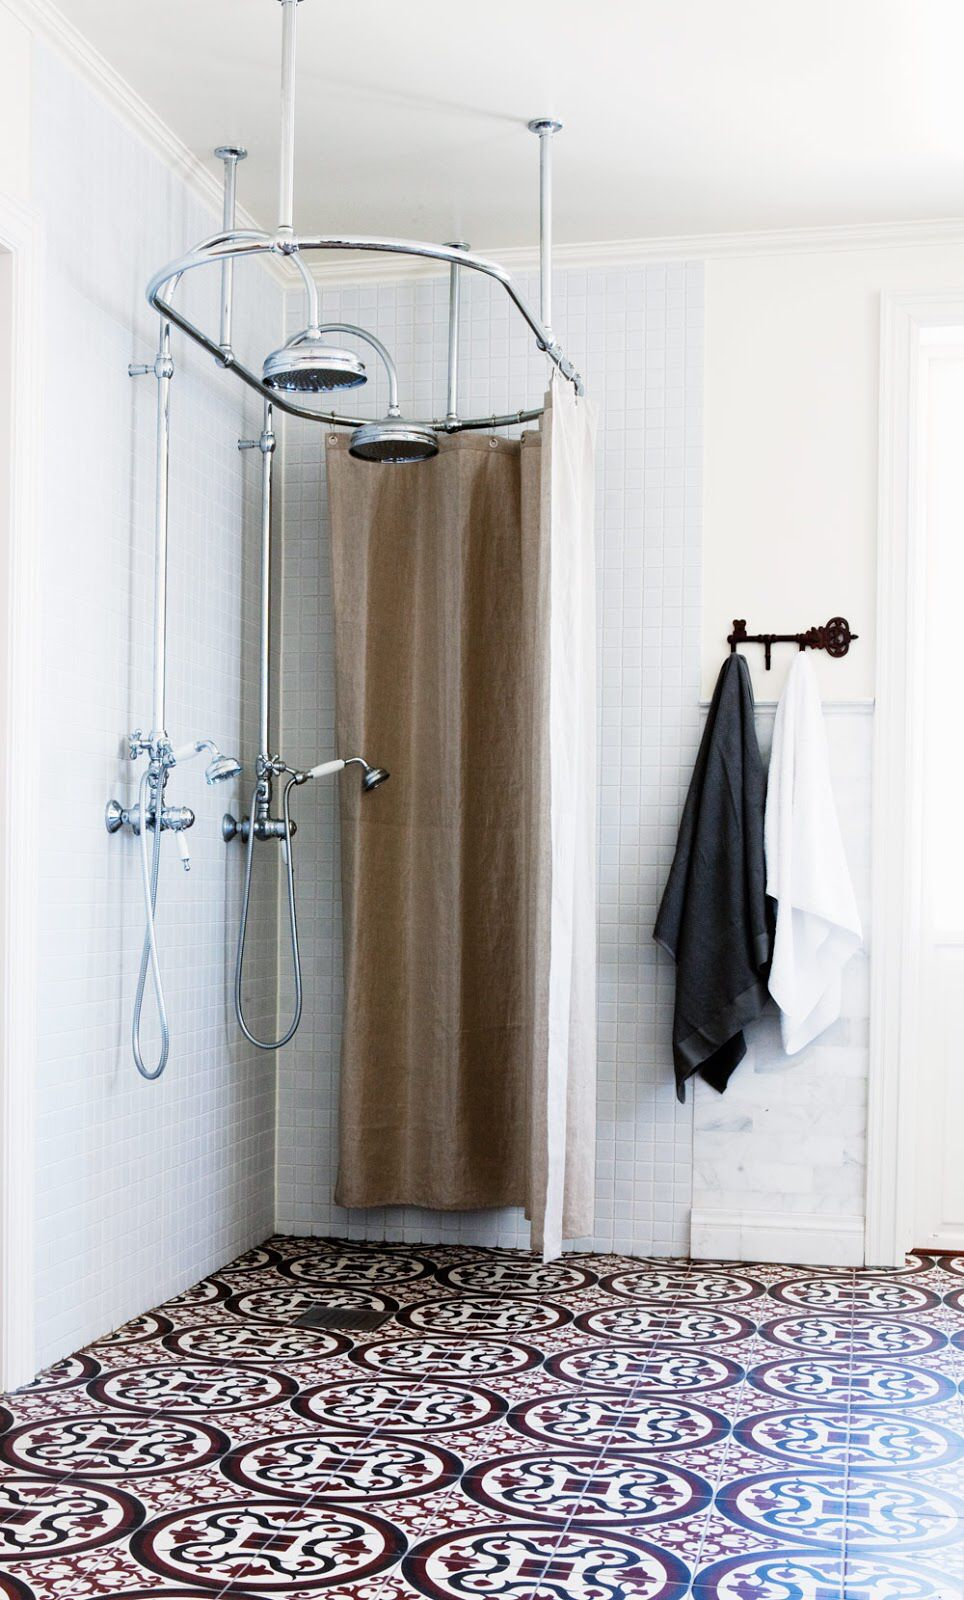 Dual Exposed Shower Old Fashioned But Still Modern Inspiration Salle De Bain Decoration Salle De Bain Et Interieur Salle De Bain